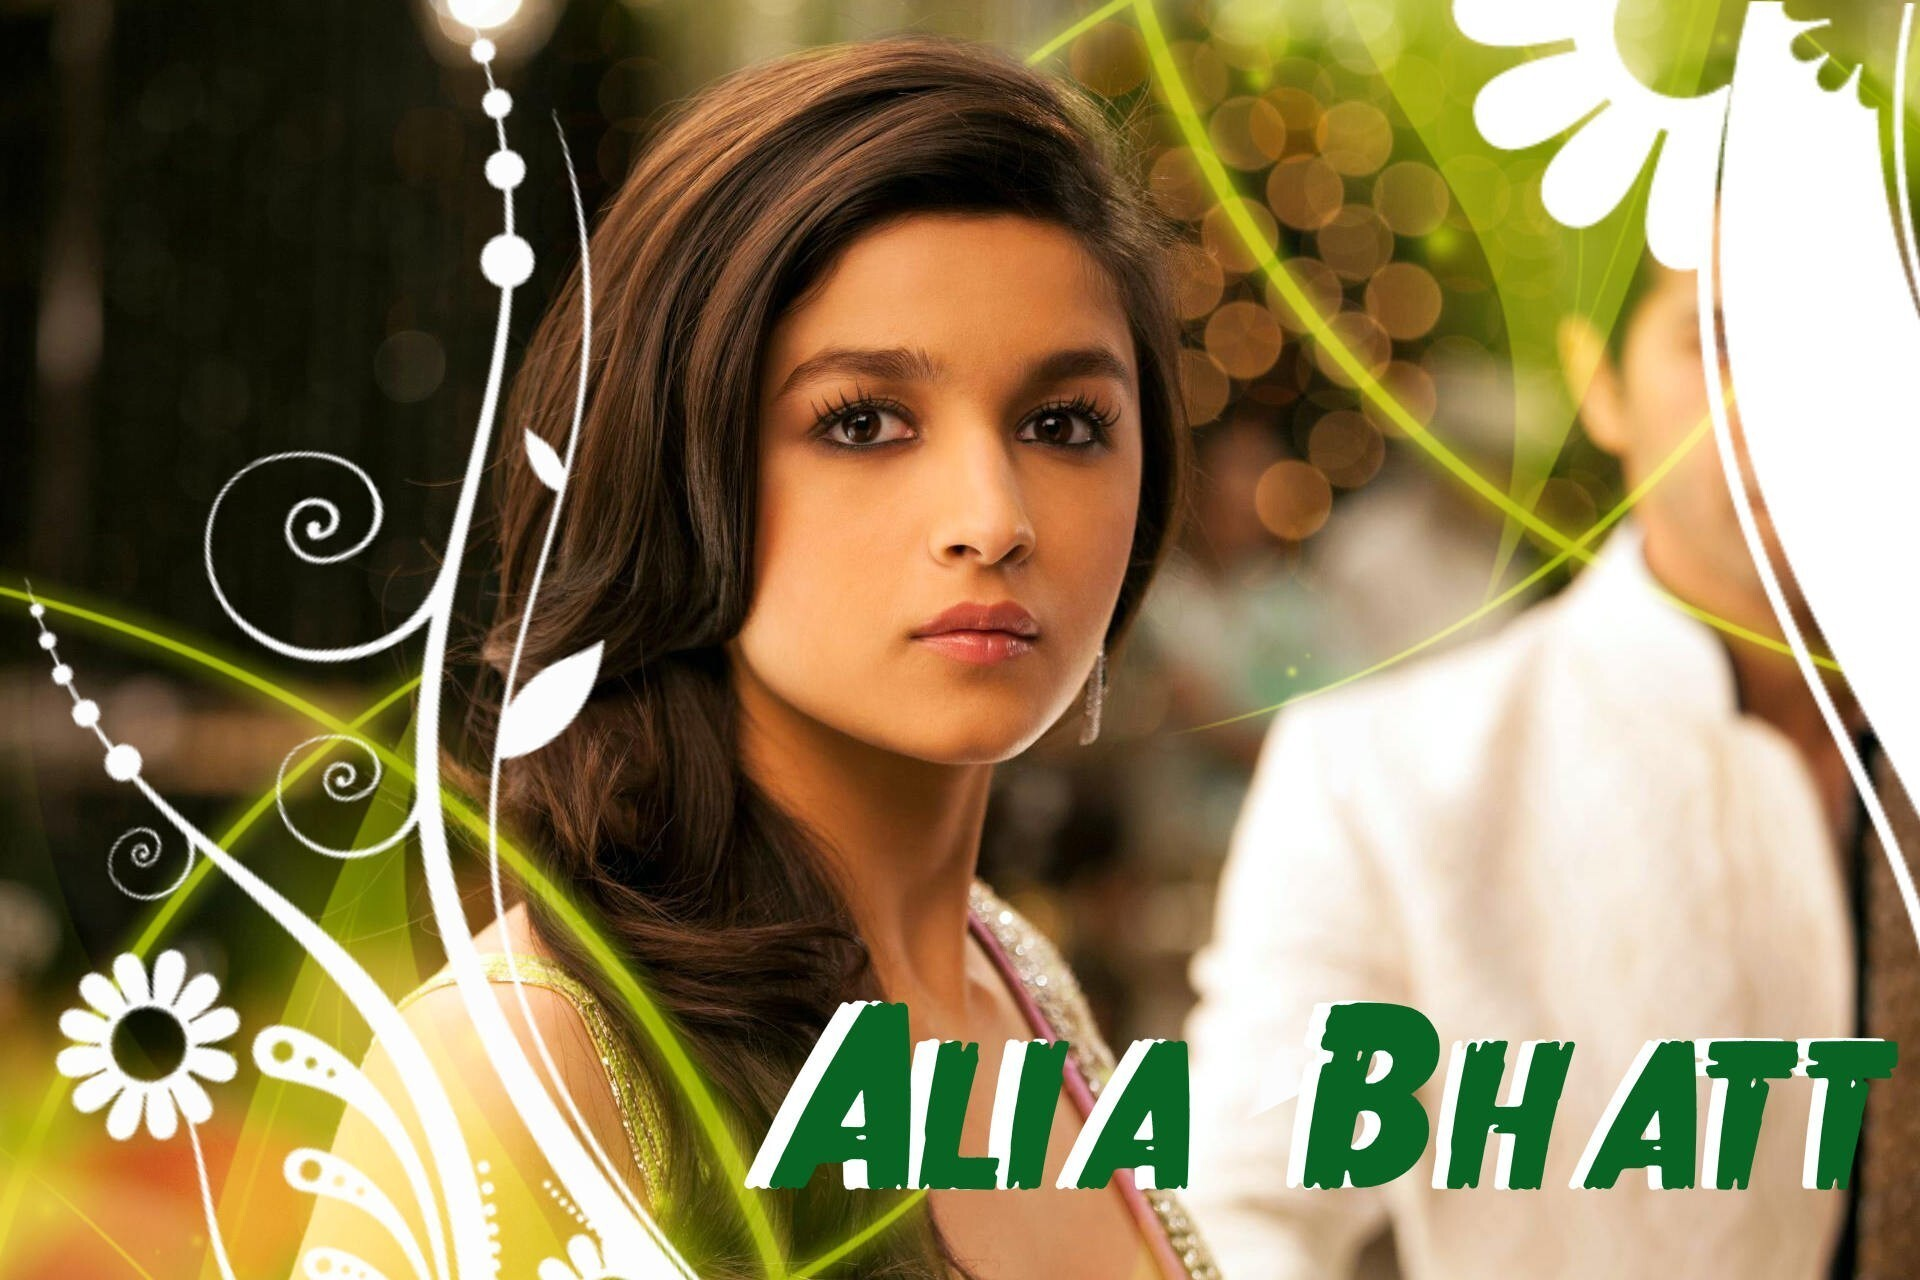 Wallpaper download heroine - Alia Bhatt Wallpapers